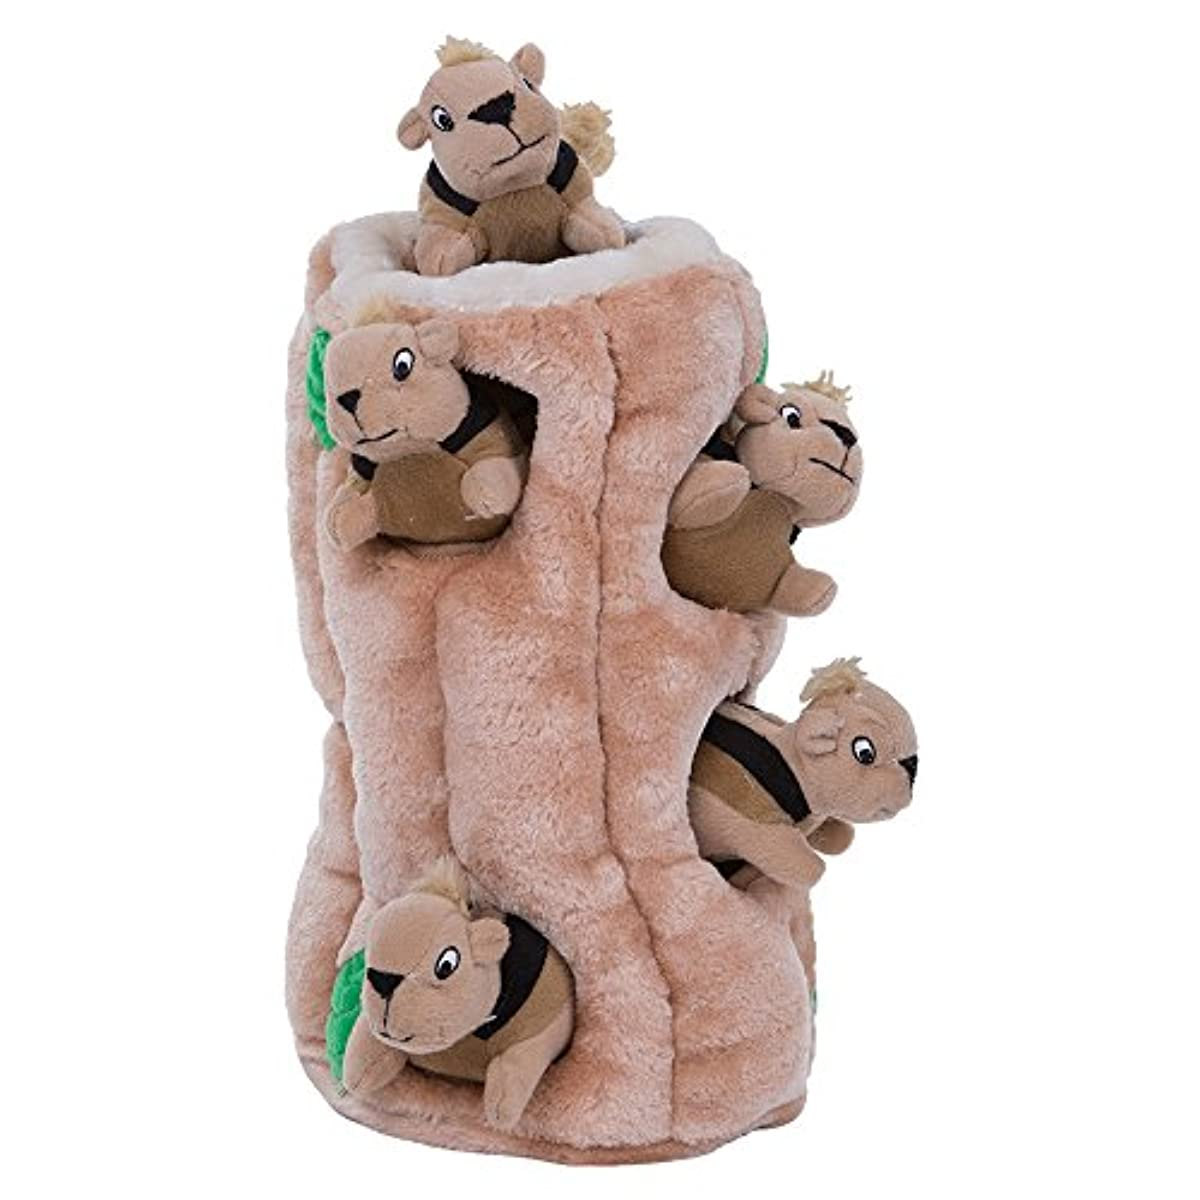 Dog Toy Plush Squeaking Hide-A-Squirrel Puzzle Squirrels Ginormous XL Size